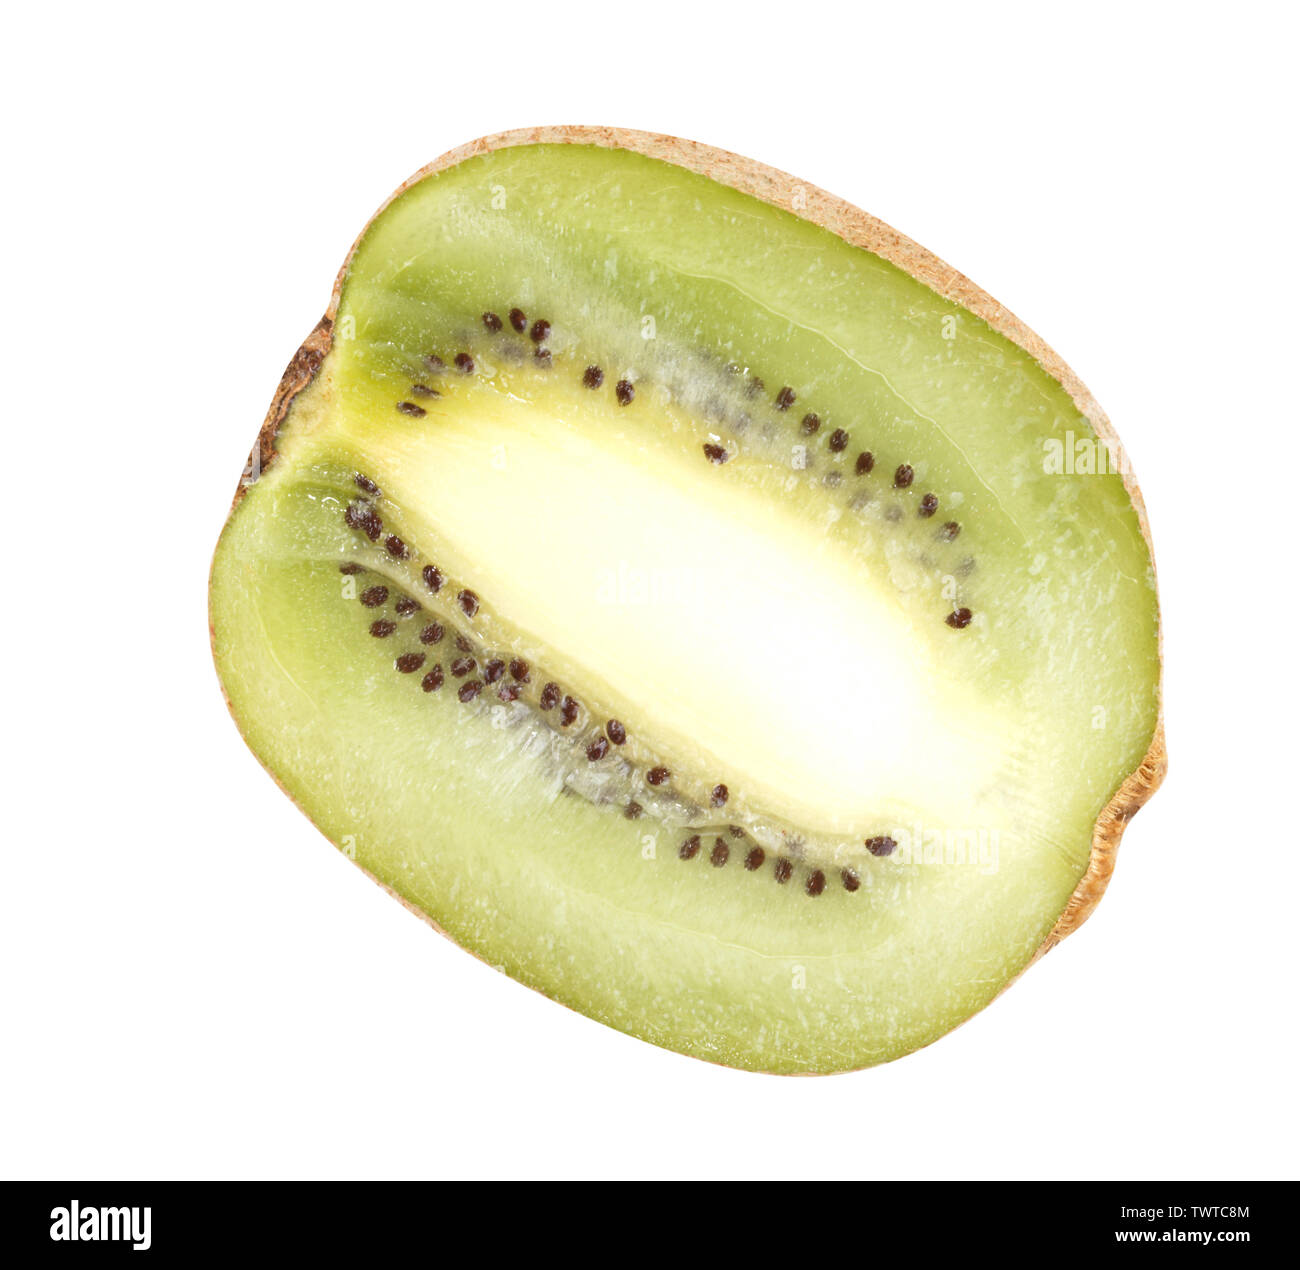 raw kiwi isolated on white - Stock Image